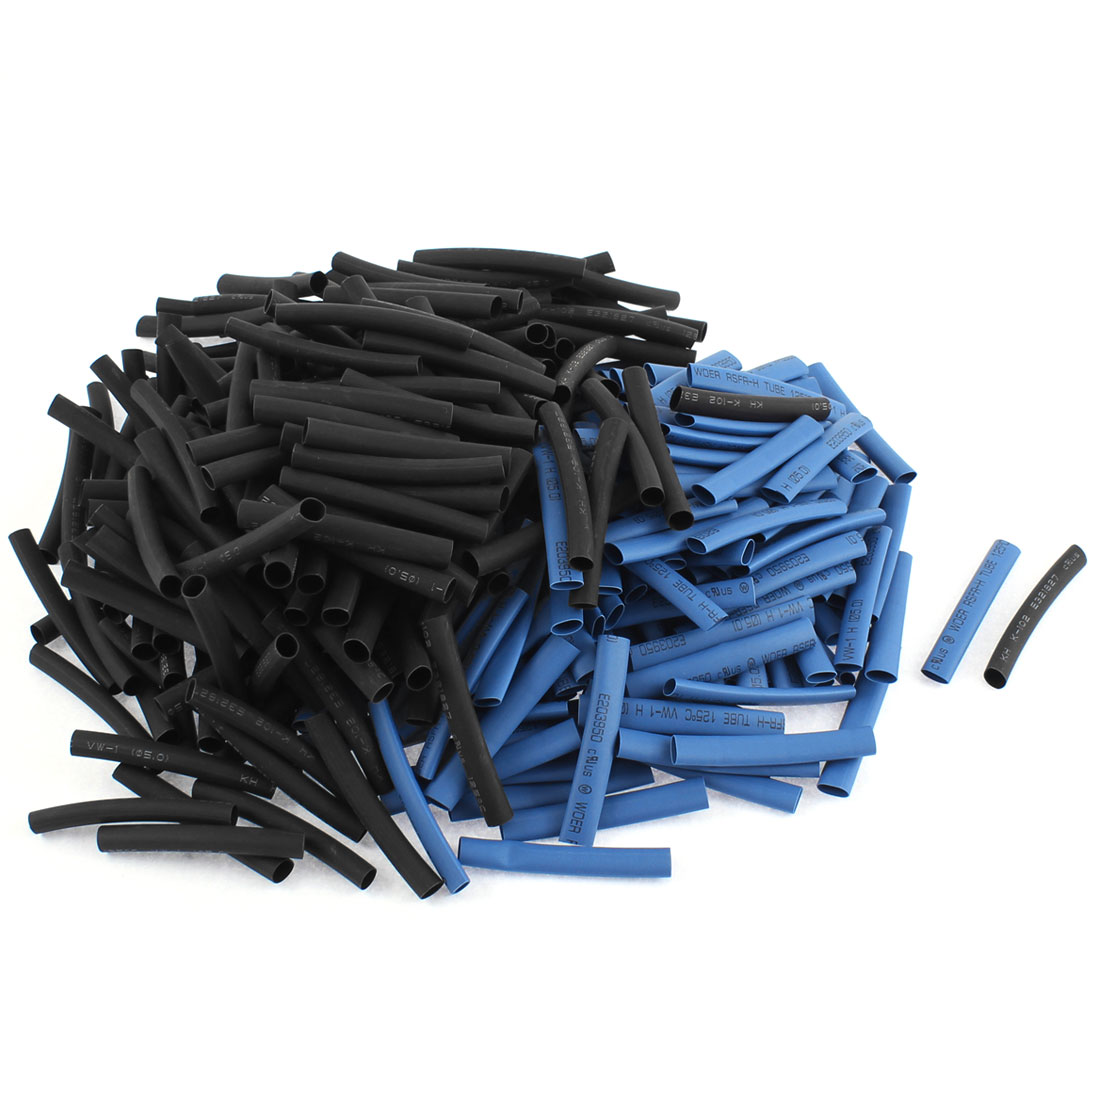 Electrical Connection Cable Sleeve 50mm Long Heat Shrink Tubing Blue Black 400Pcs